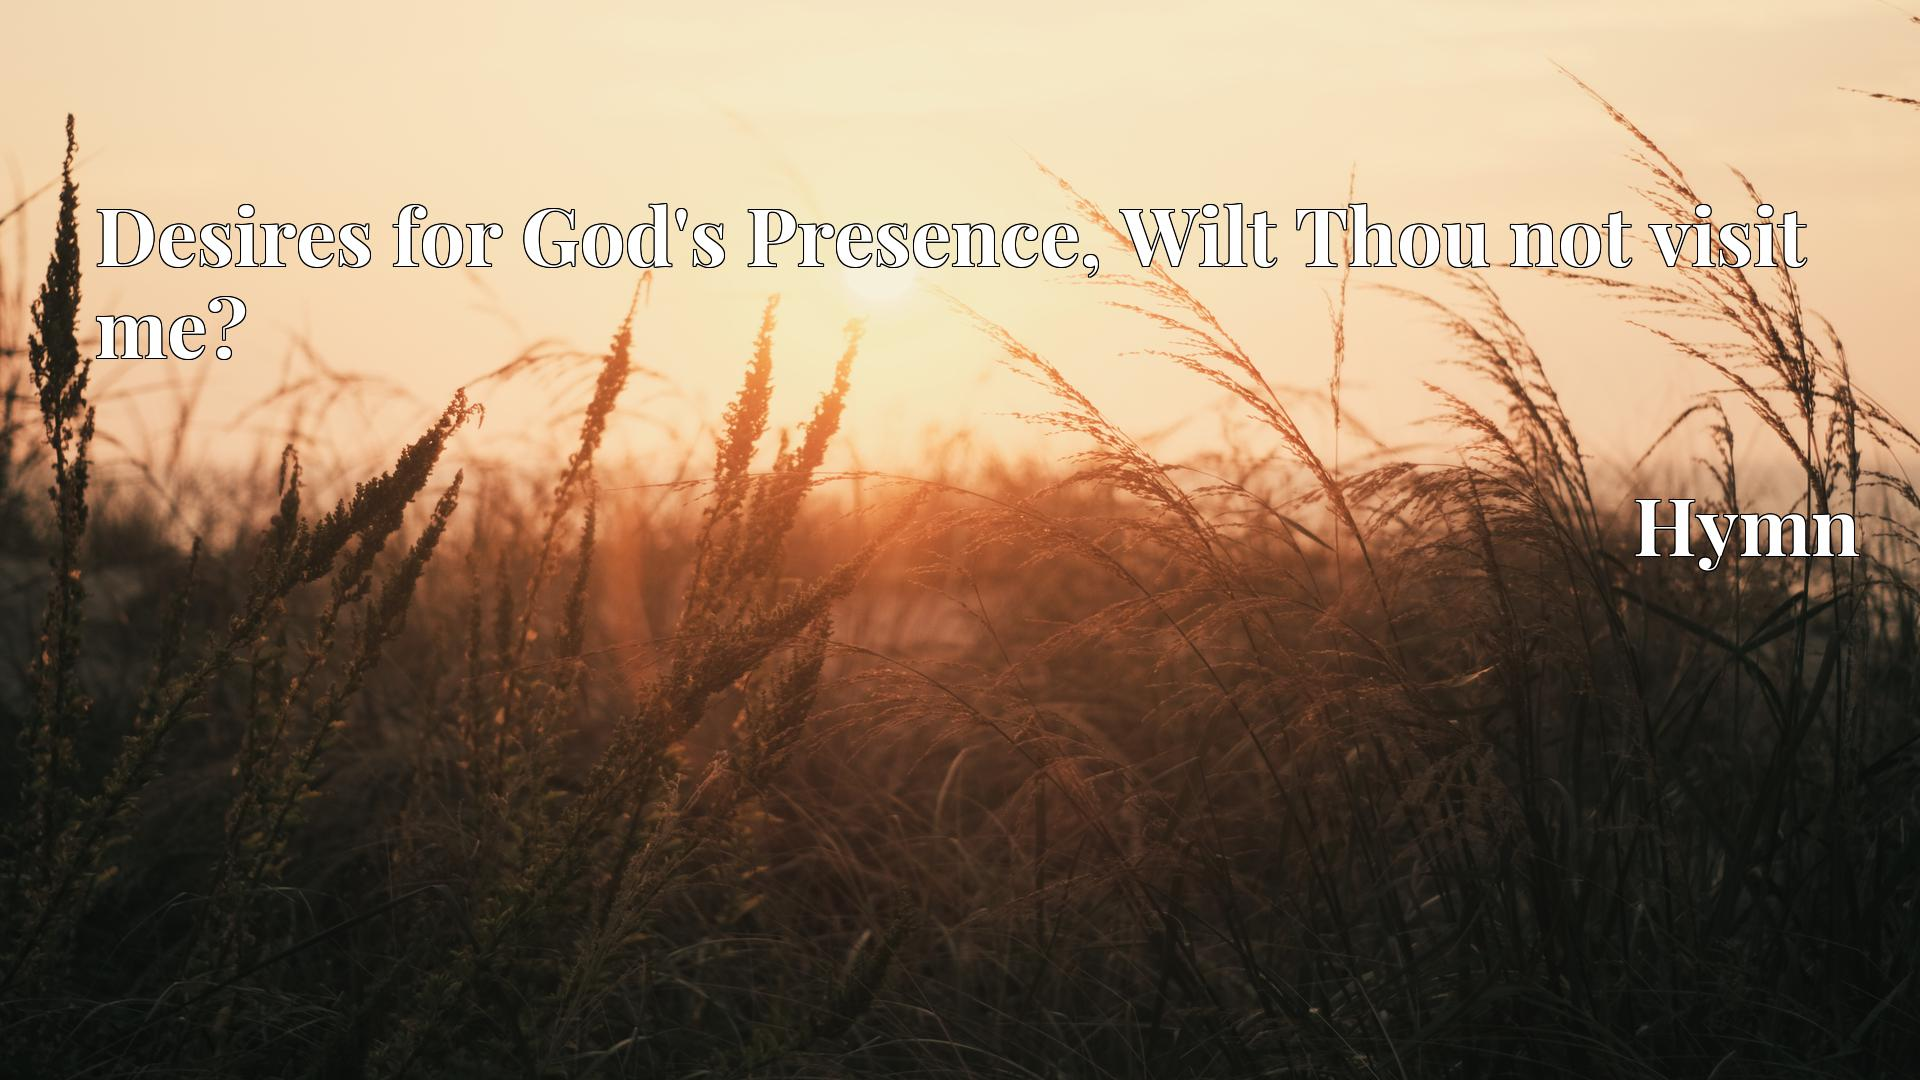 Desires for God's Presence, Wilt Thou not visit me? - Hymn